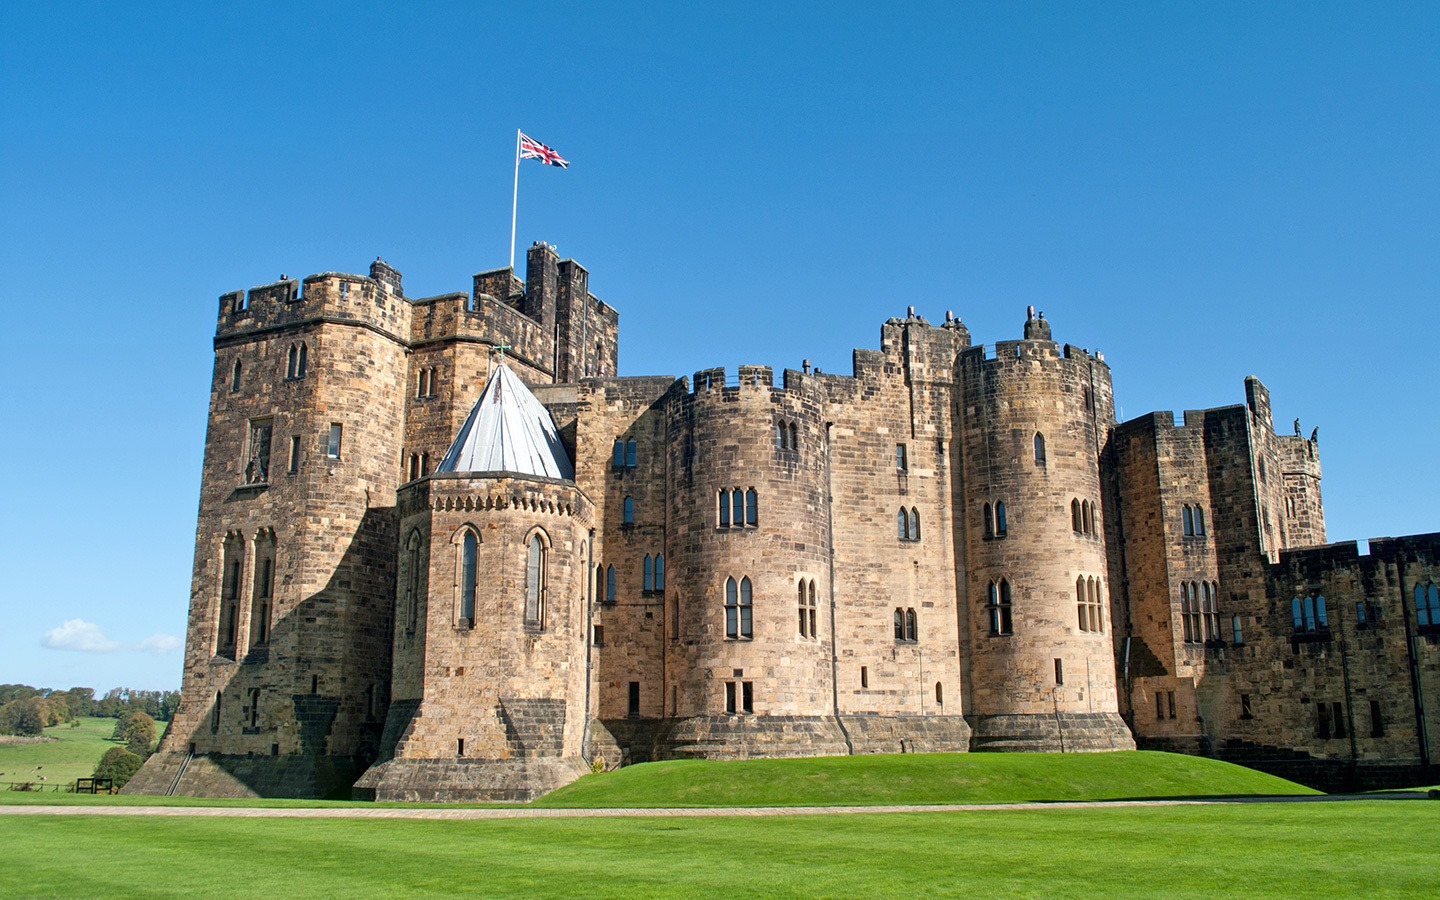 Alnwick Castle in Northumberland, England, a Harry Potter filming location